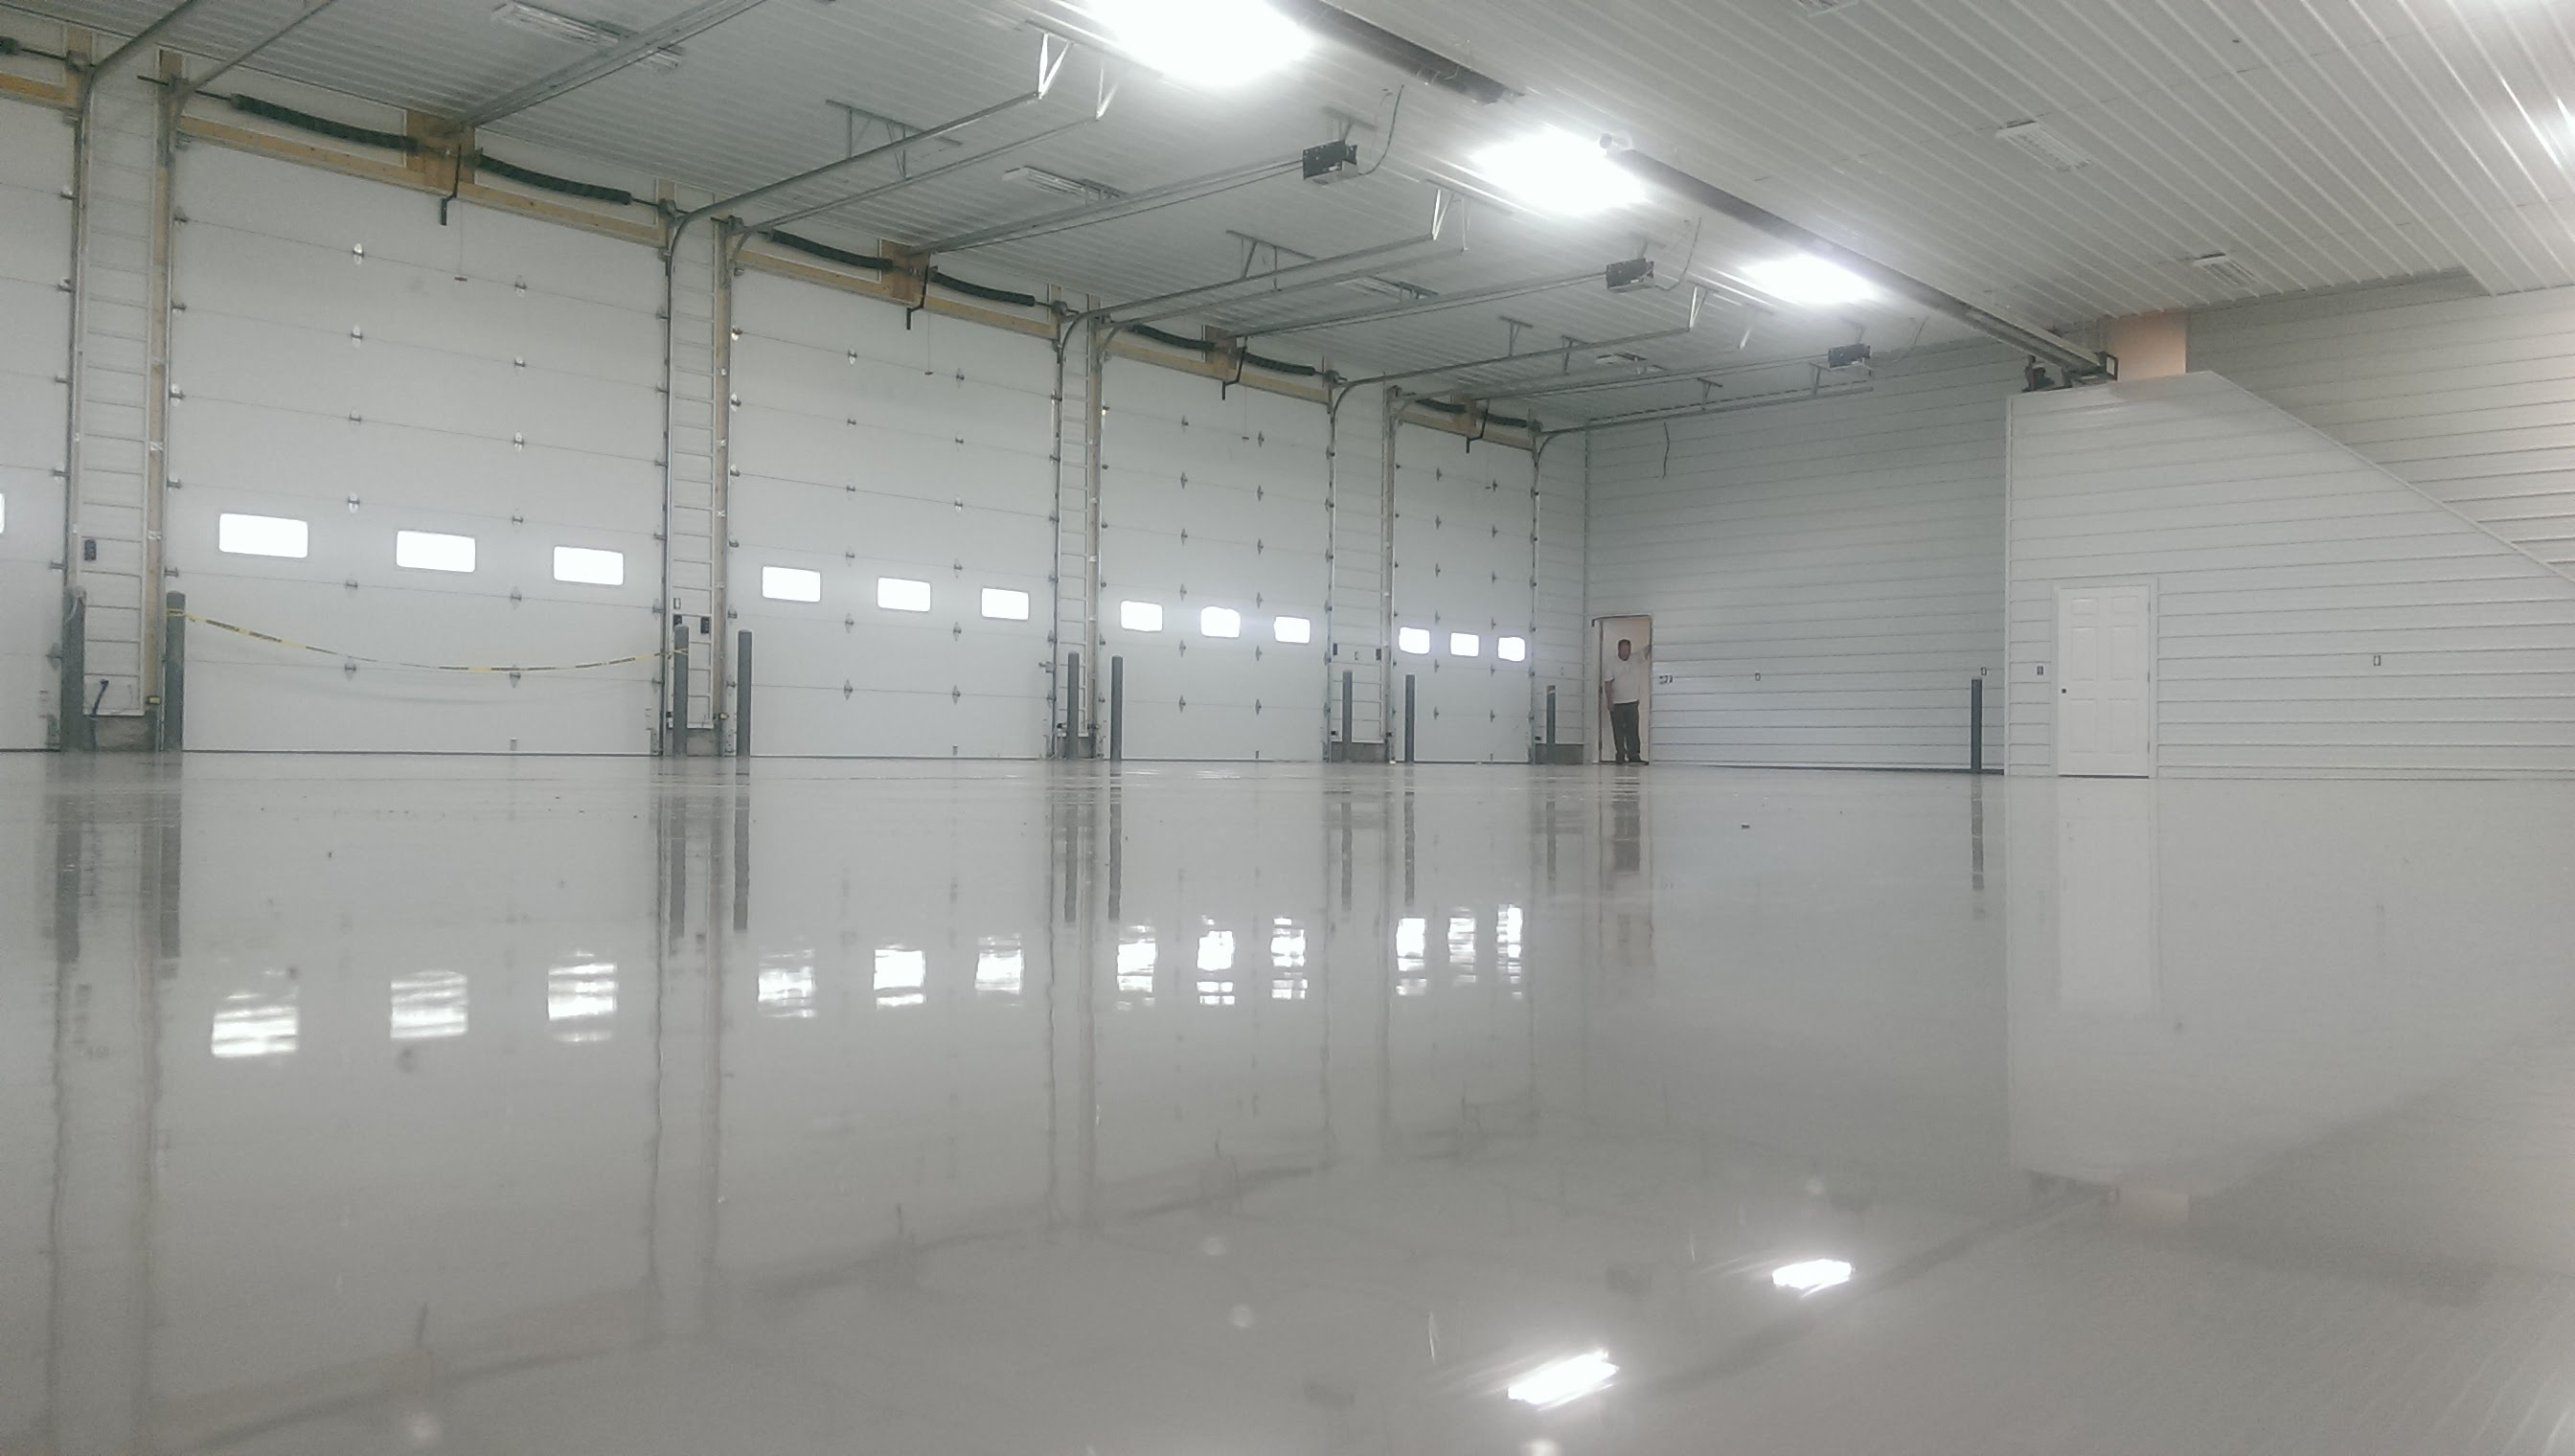 Garage Floor Epoxy Steps How To Make Your Floor Practical And Stylish With Epoxy Epoxy